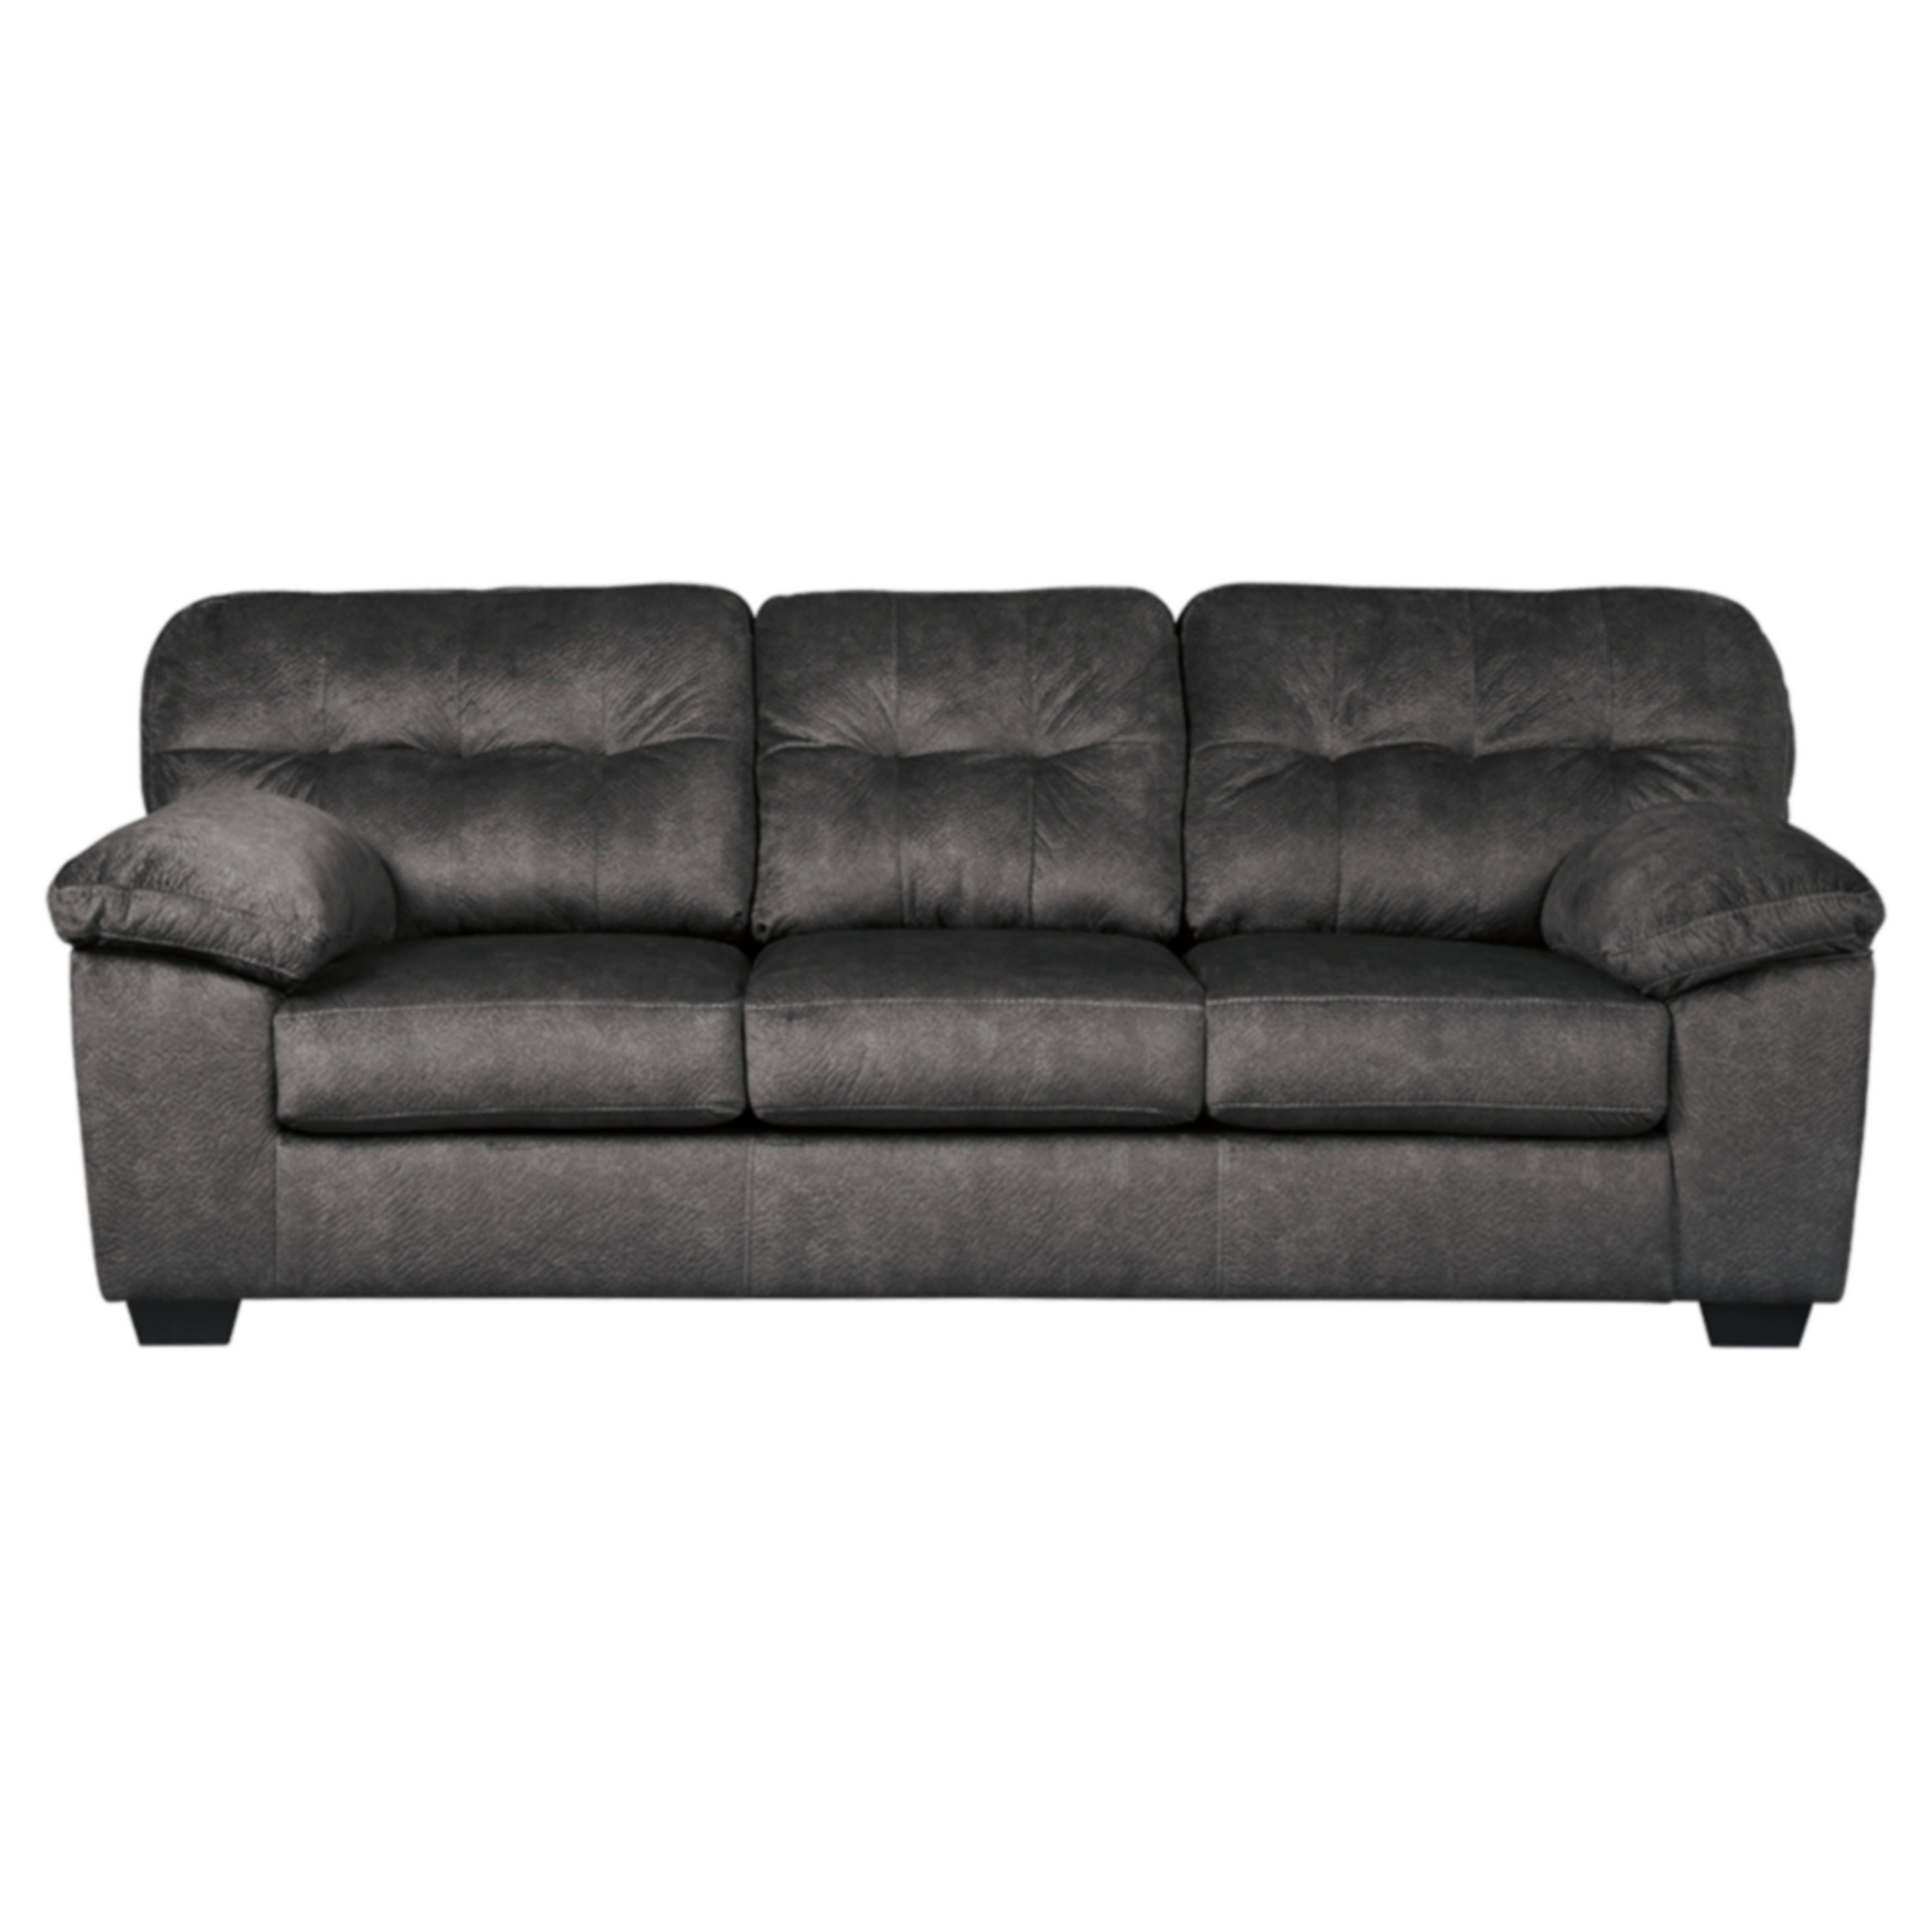 Signature Design By Ashley Accrington Contemporary Granite Fabric Upholstered Queen Size Sofa Sleeper